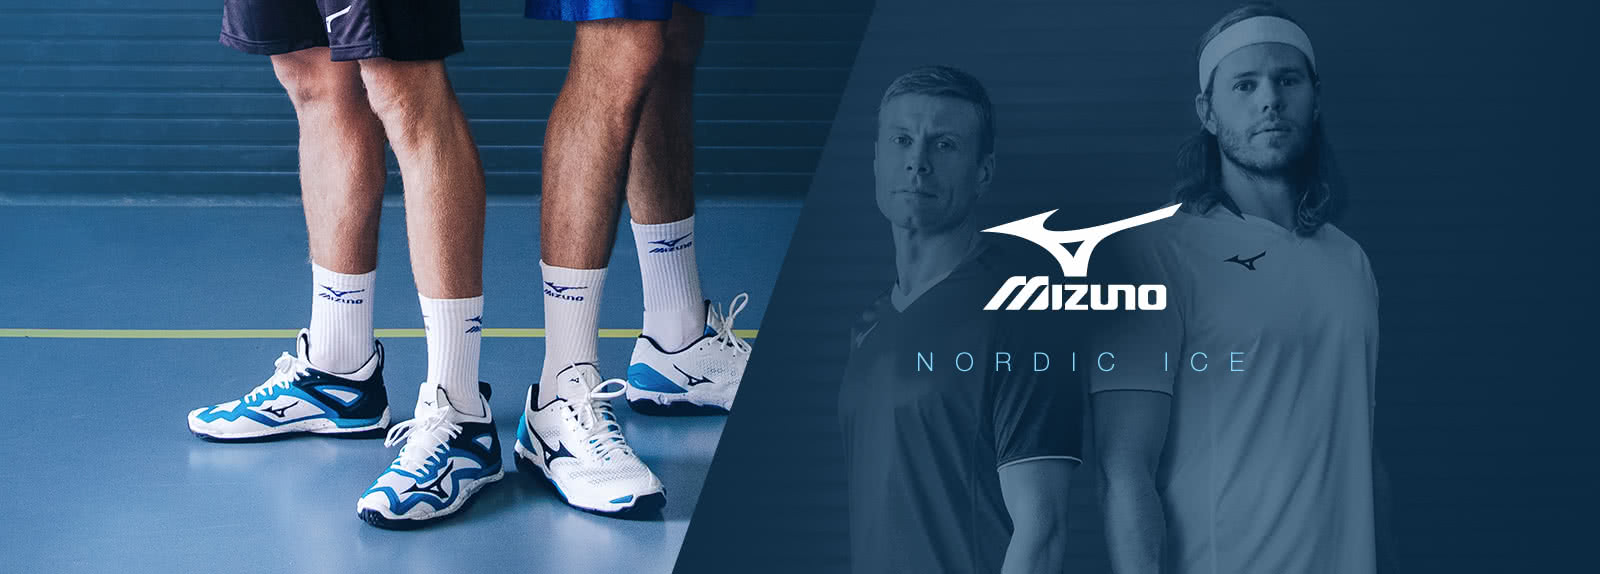 New co Mizuno Nordic Ice